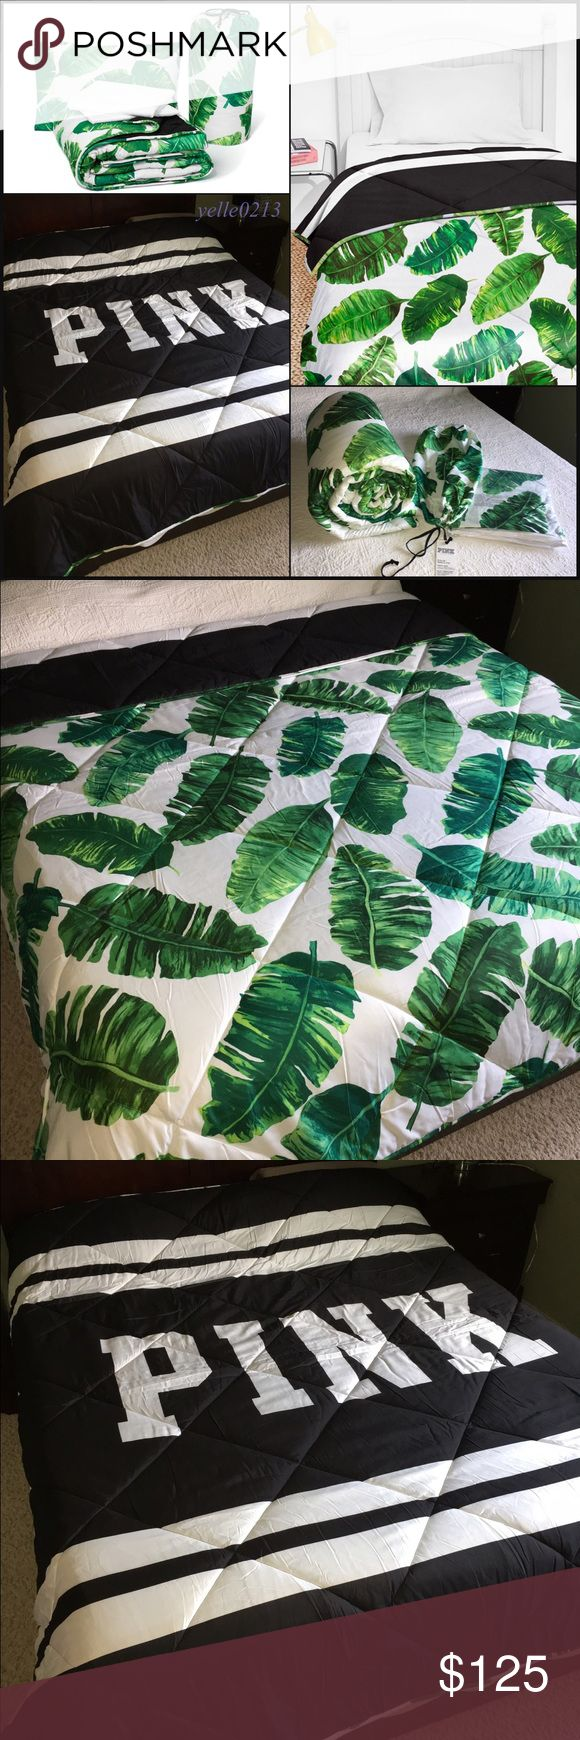 SALENwt VS PINK Bed in a Bag Set Twin/Twin XL Nwt VS PINK Bed in a Bag Set..  Size Twin/Twin XL.. Tropical Palms..  Includes: 1 Fitted Sheet 1 Bed Sheet  1 Pillow Case 1 Reversible Comforter  BRAND NEW NEVER USED.. (The Sample picture is not Twin its a Full/Queen size)  Price is firm..  Thank you.. PINK Victoria's Secret Accessories